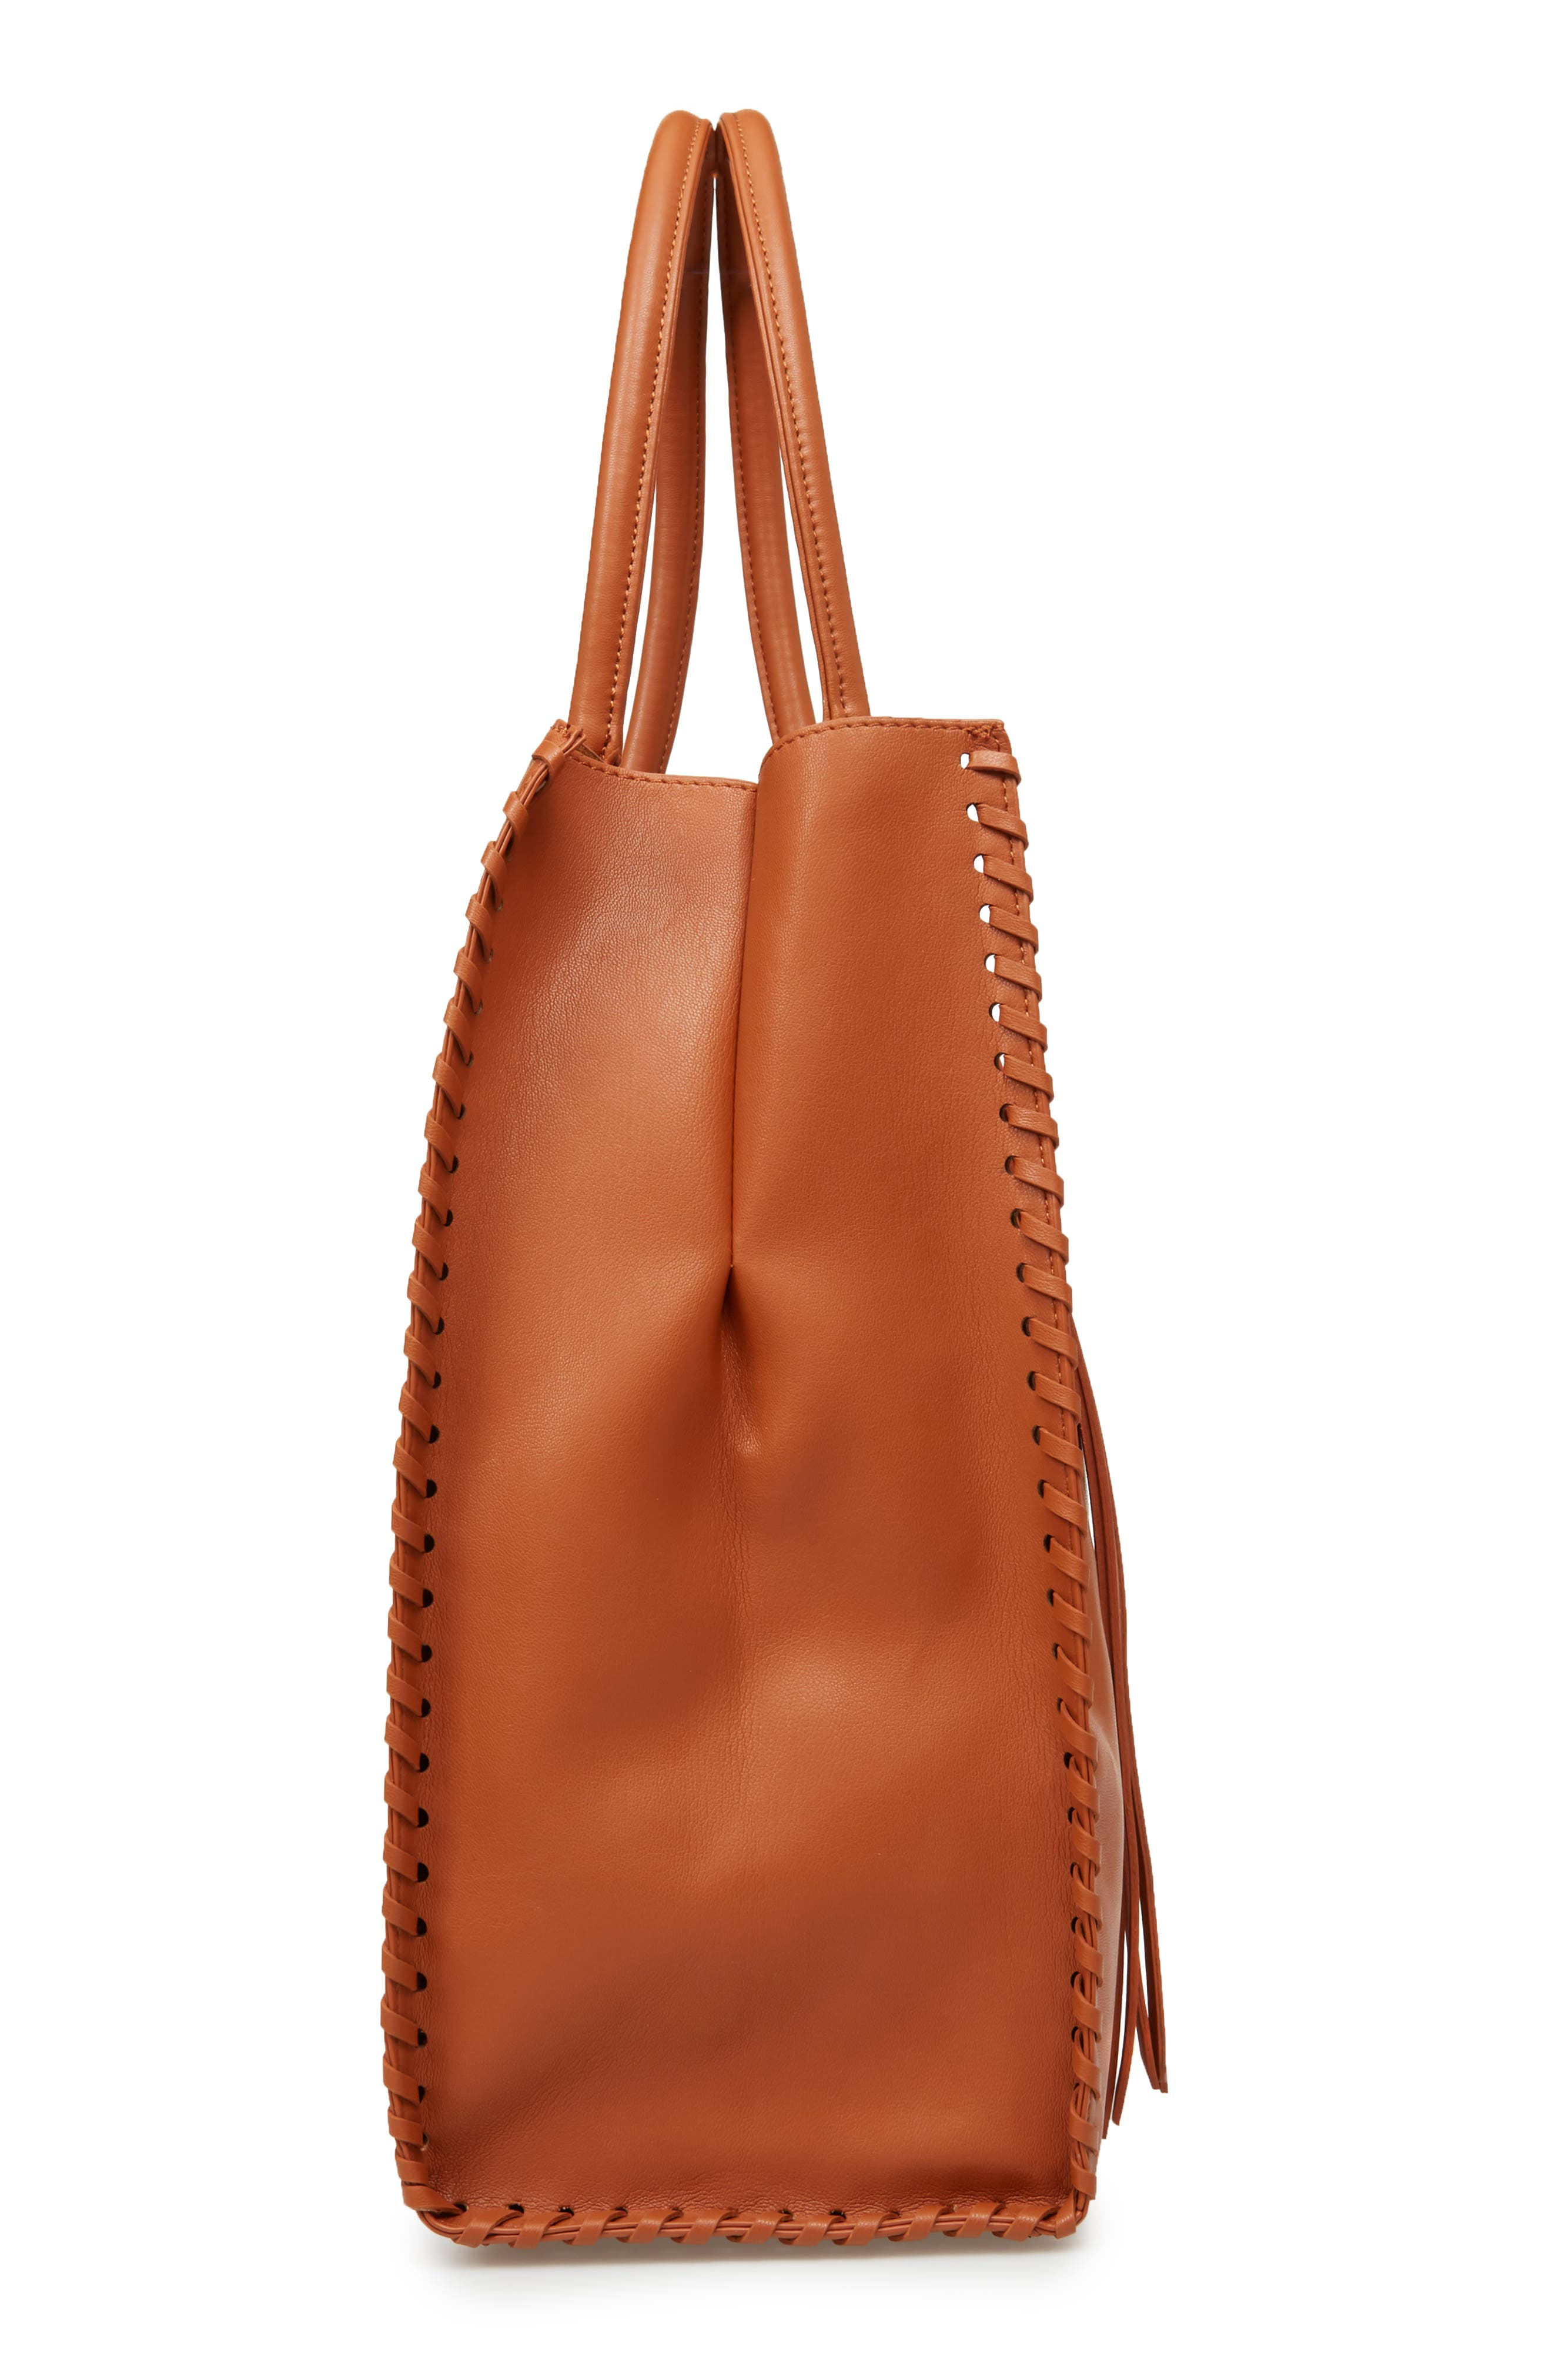 Cadence Faux Leather Whipstitch Tote,                             Alternate thumbnail 5, color,                             200